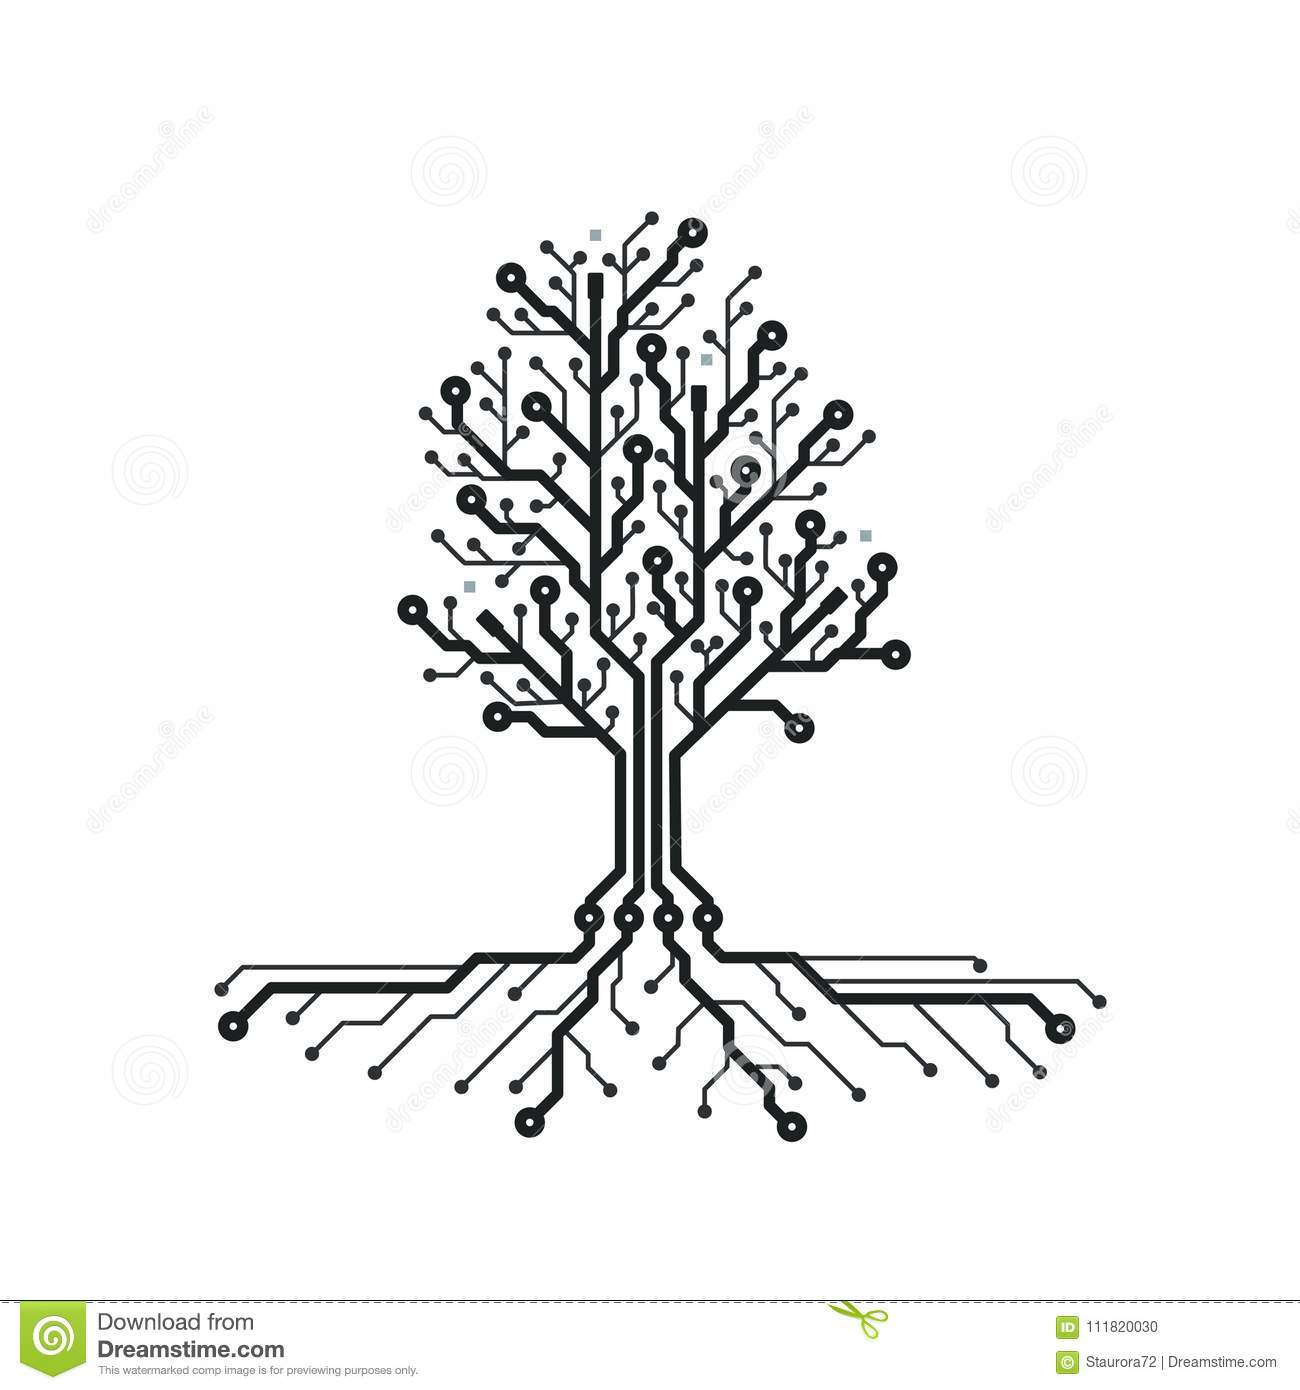 Concept Circuit Board Tree Futuristic Background With Tech Design Black And White Images Pcb